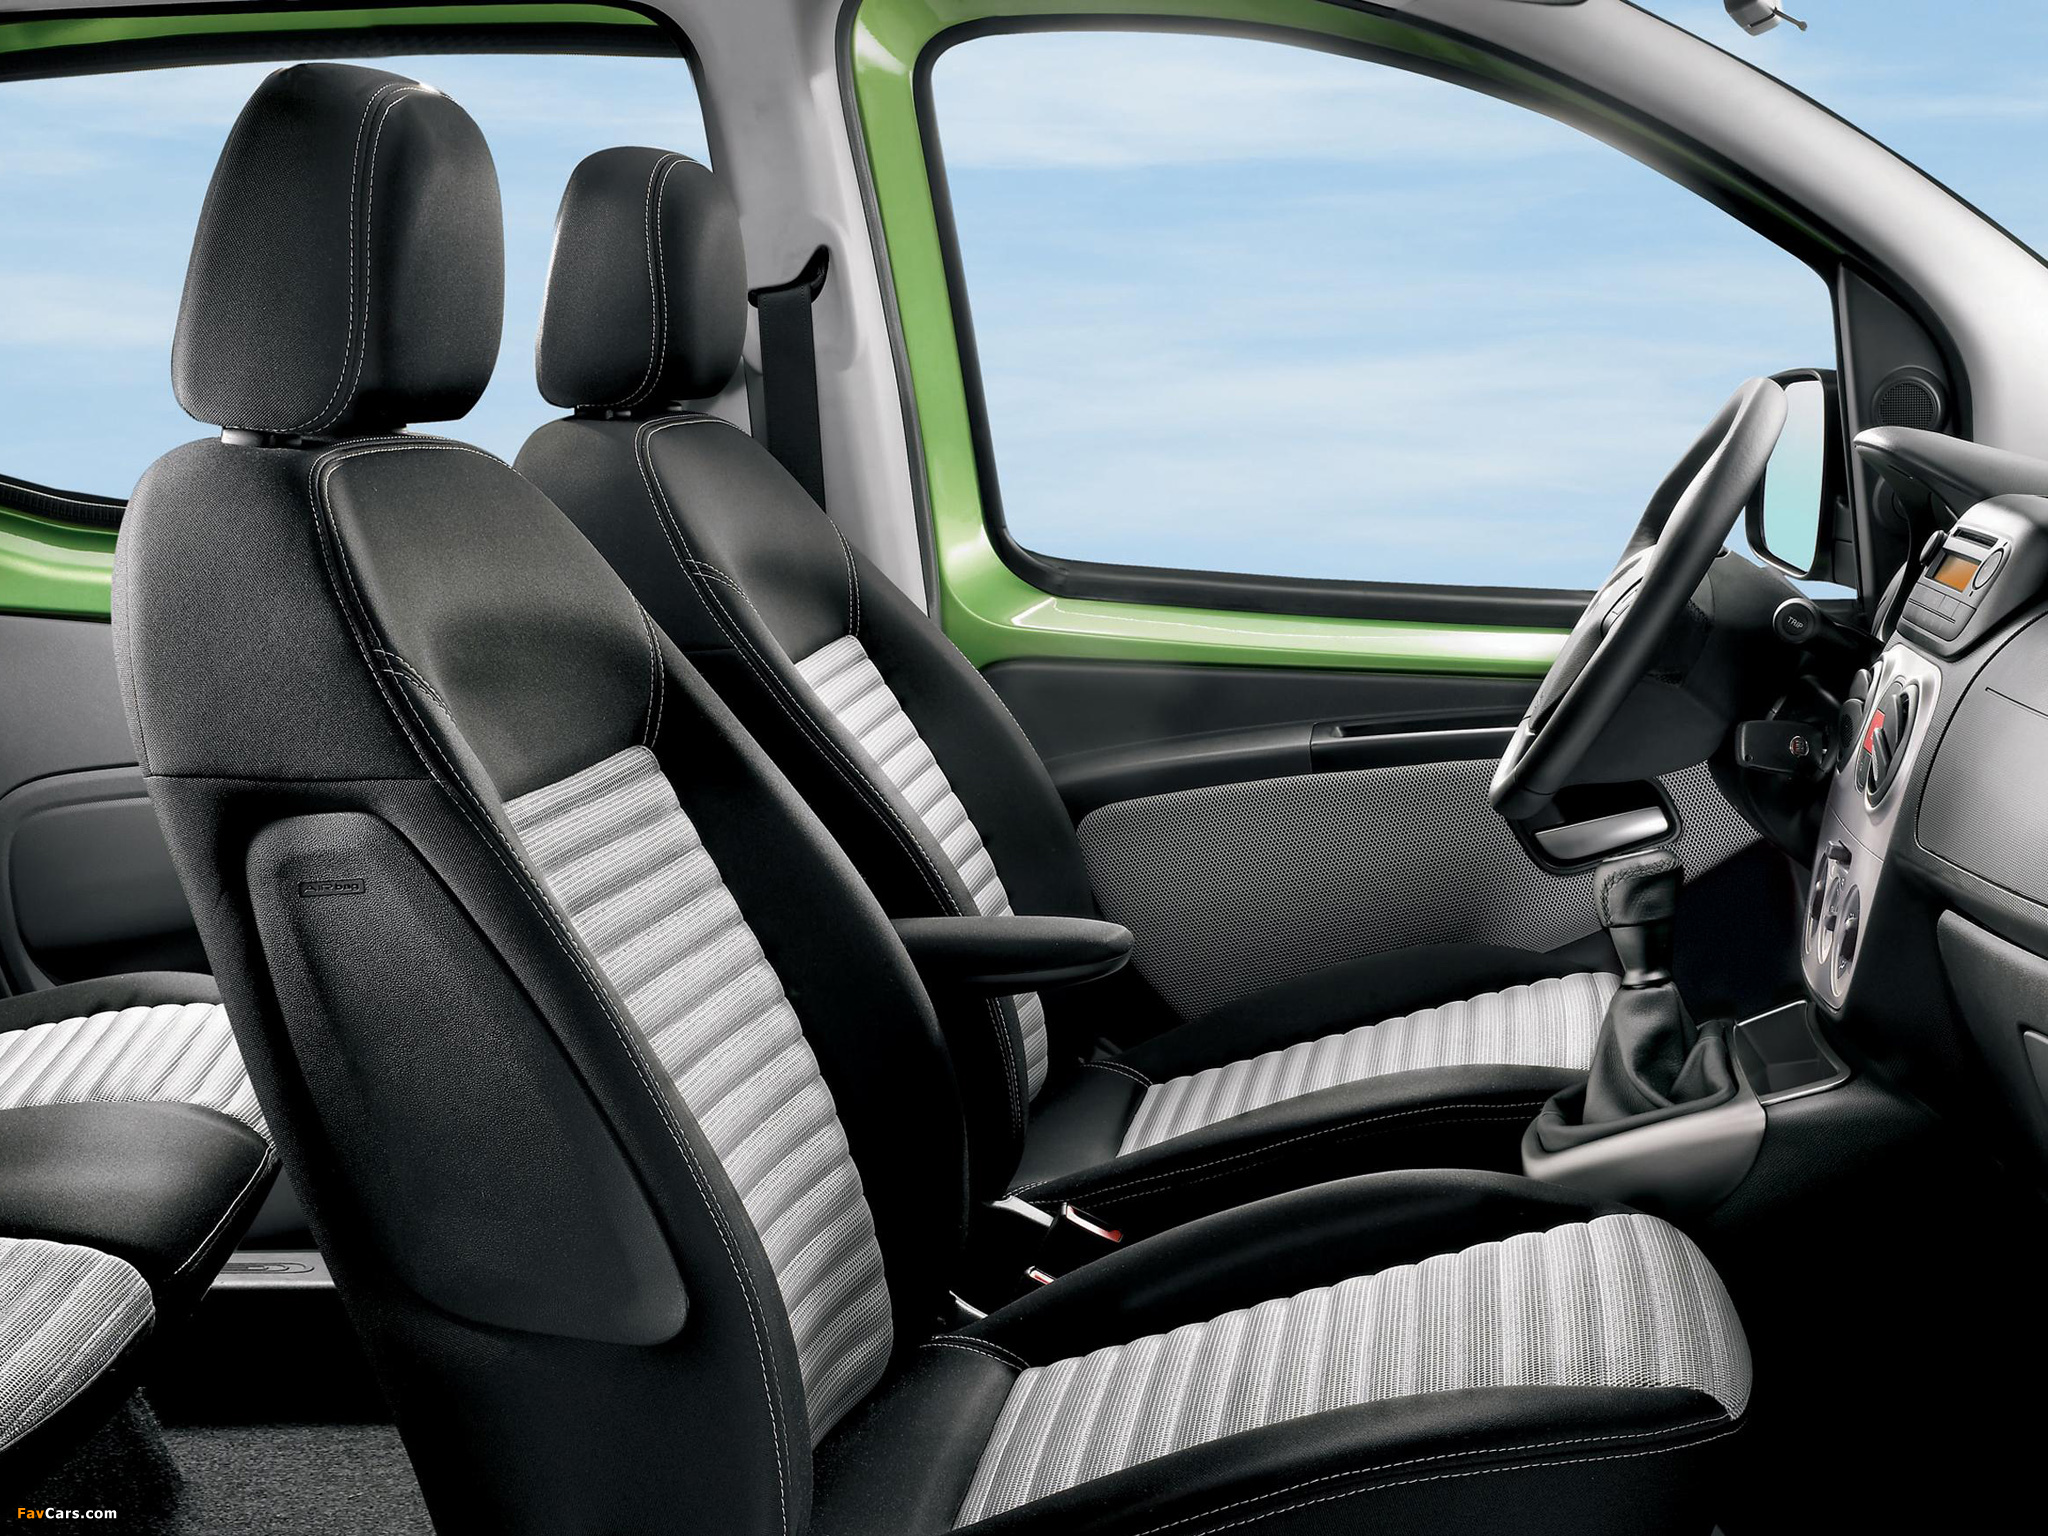 Fiat Qubo (225) 2008 wallpapers (2048 x 1536)